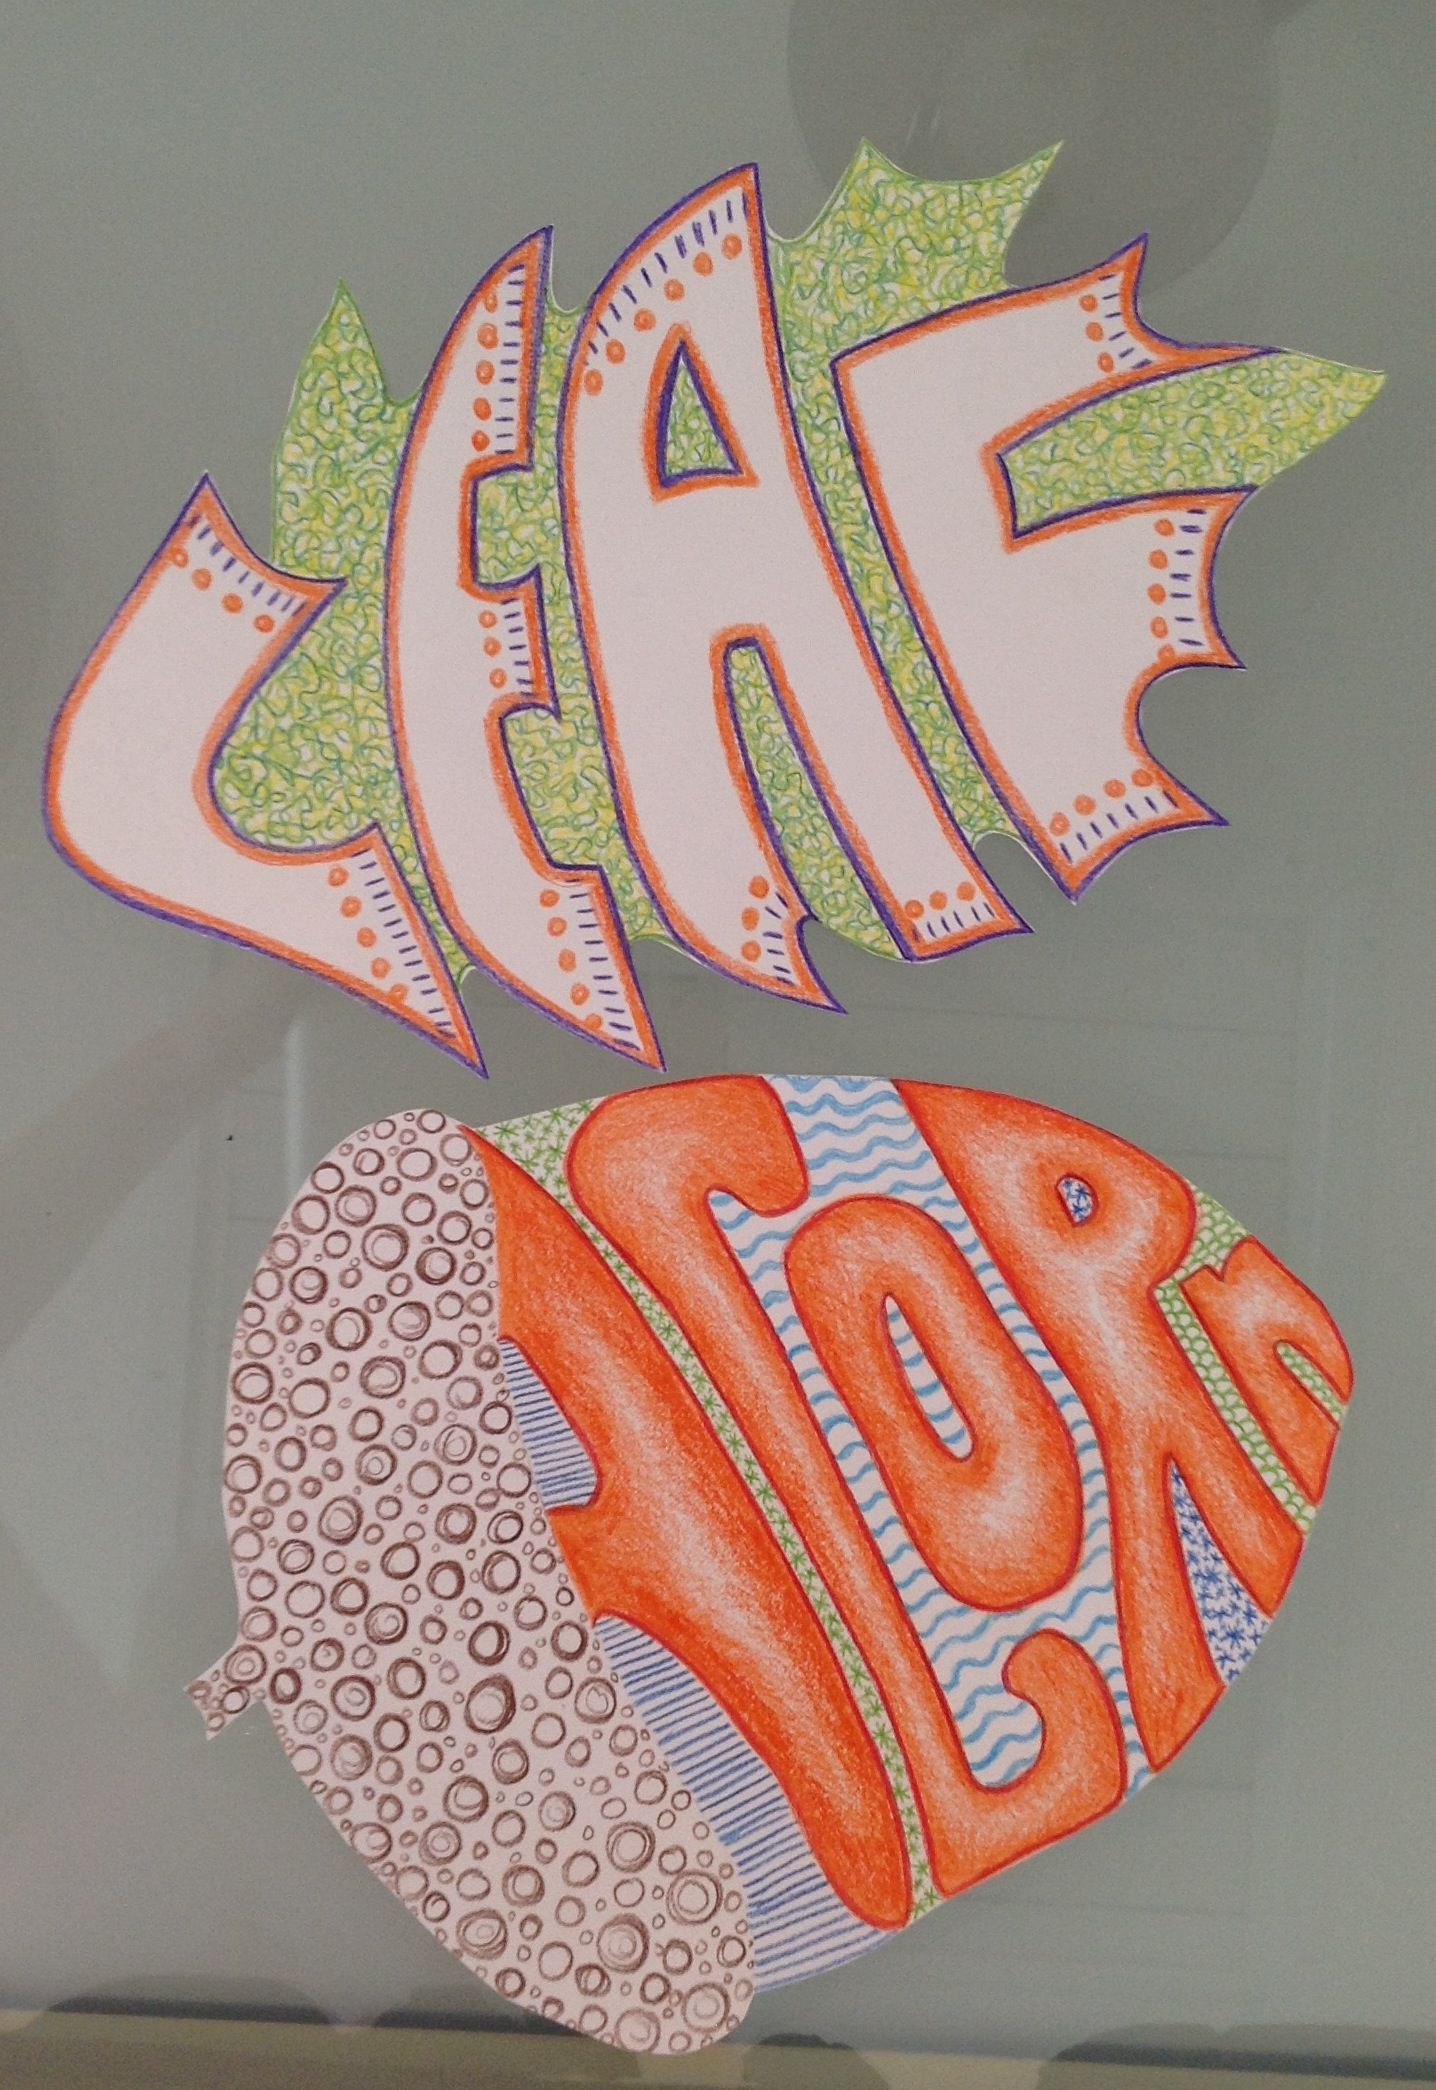 Fall Words Shapes And Patterns My 5th Graders Did These For The First Fall Art Lesson Using